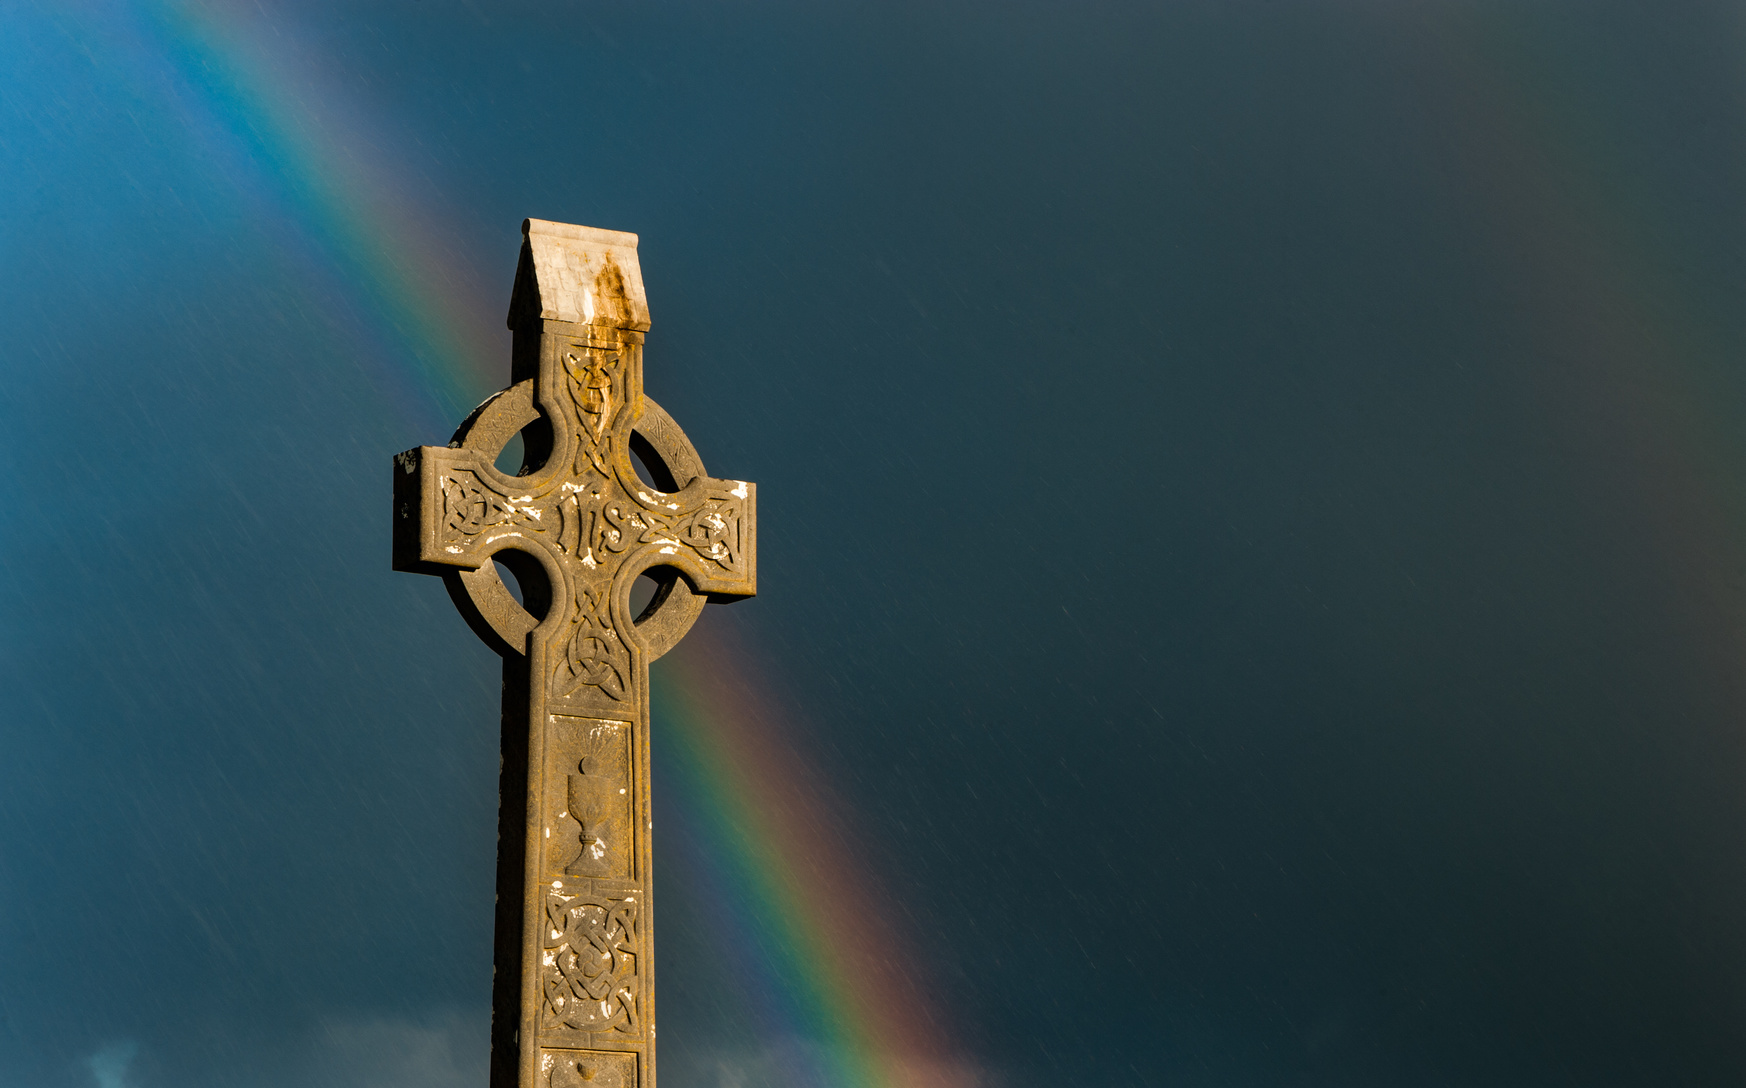 Rainbow sky behind celtic cross gravestone at sunset